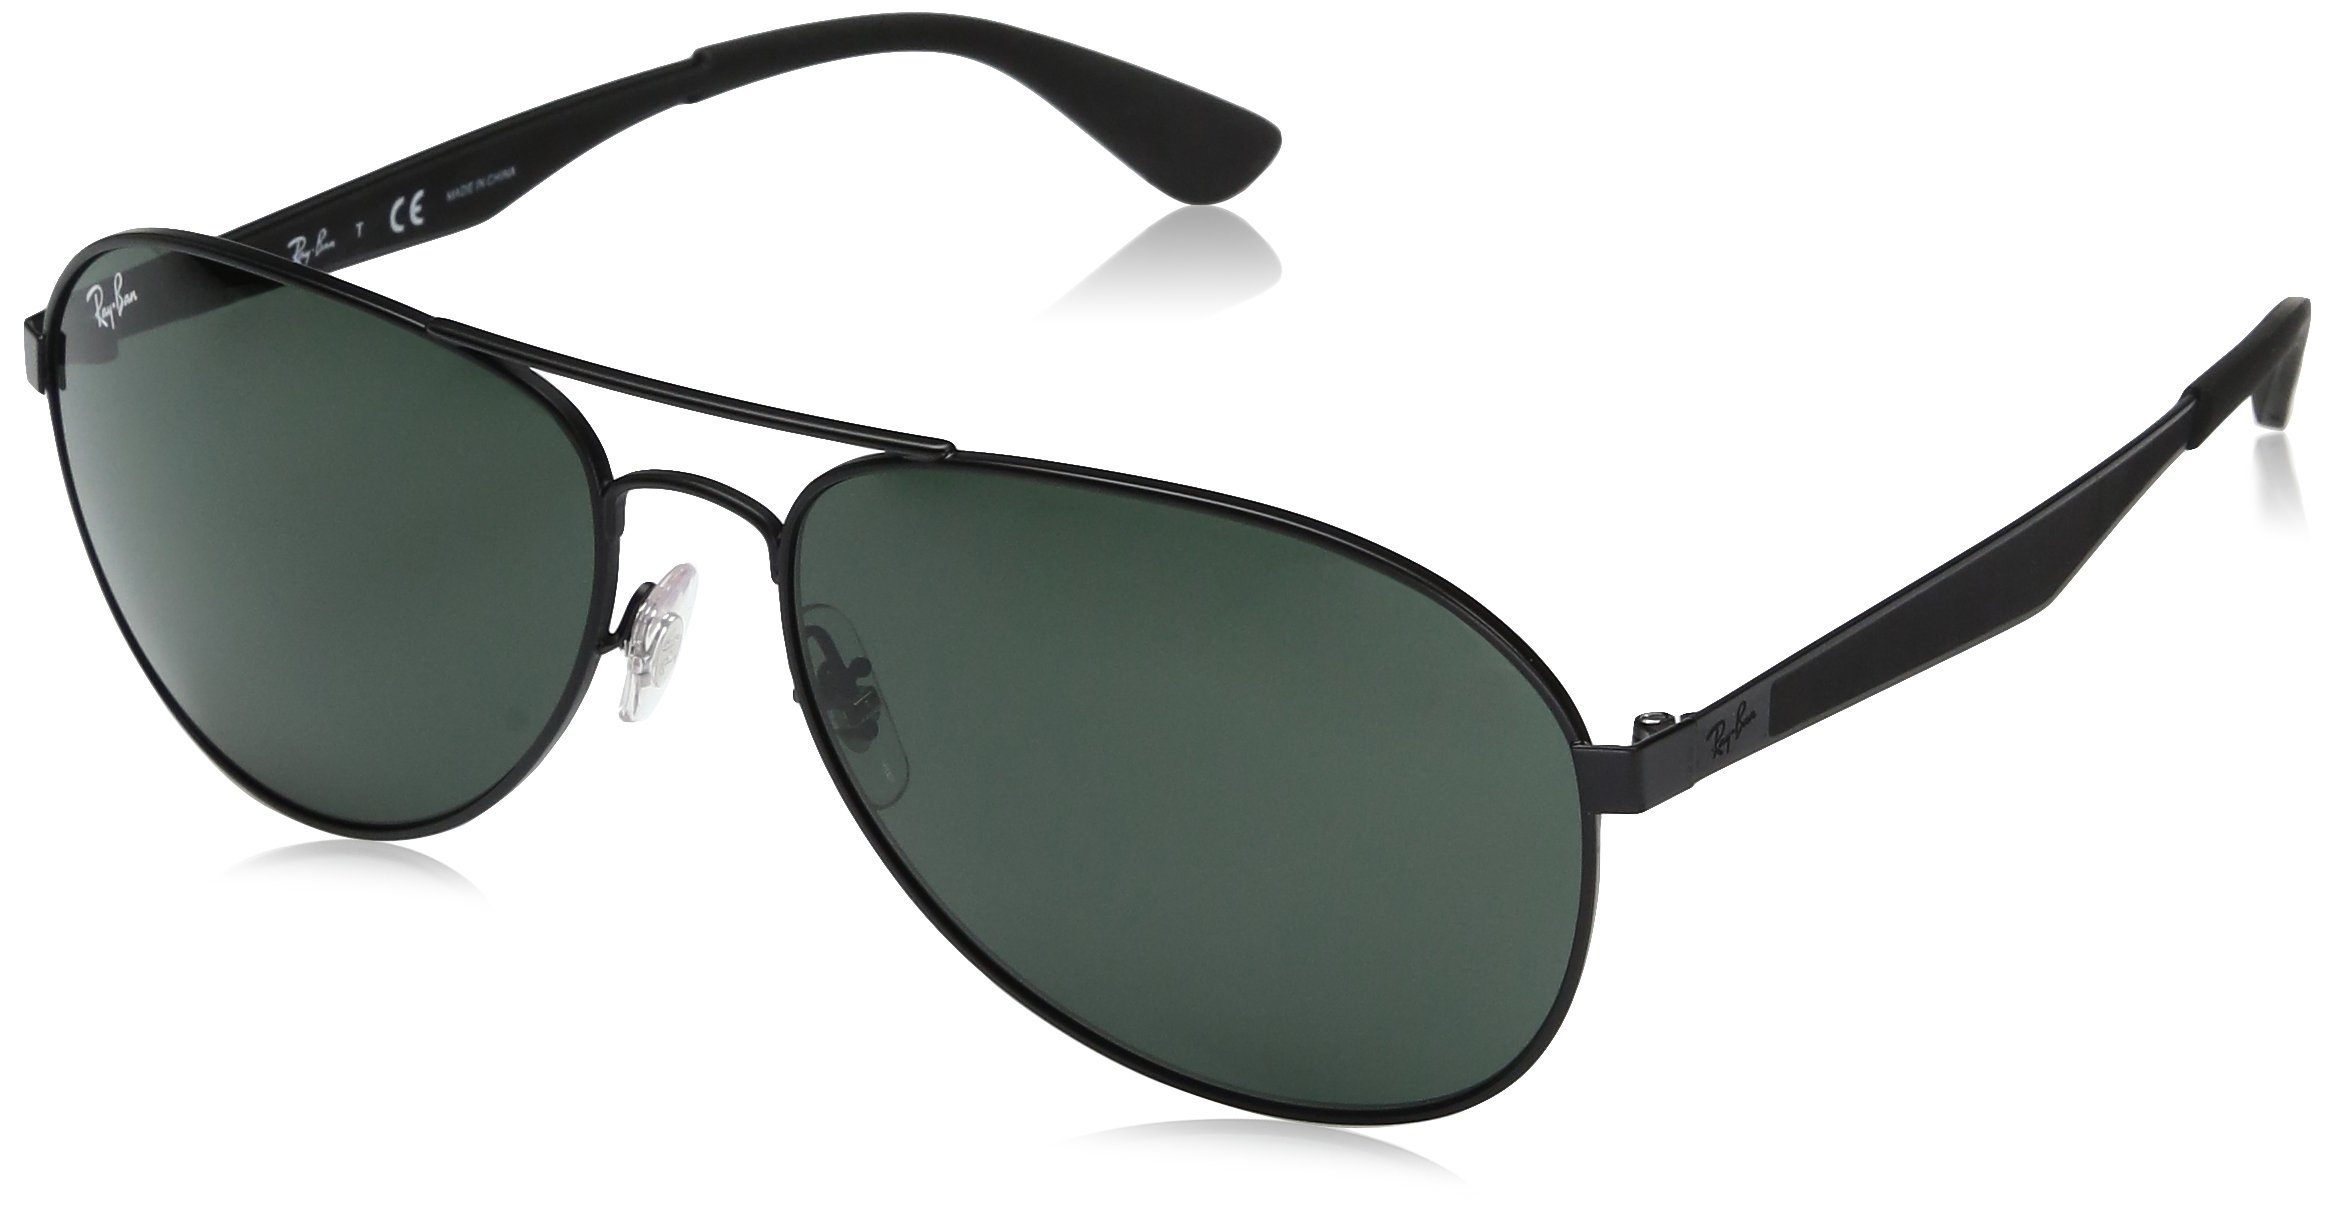 RAY-BAN RB3549 Aviator Sunglasses, Matte Black/Green, 61 mm by RAY-BAN